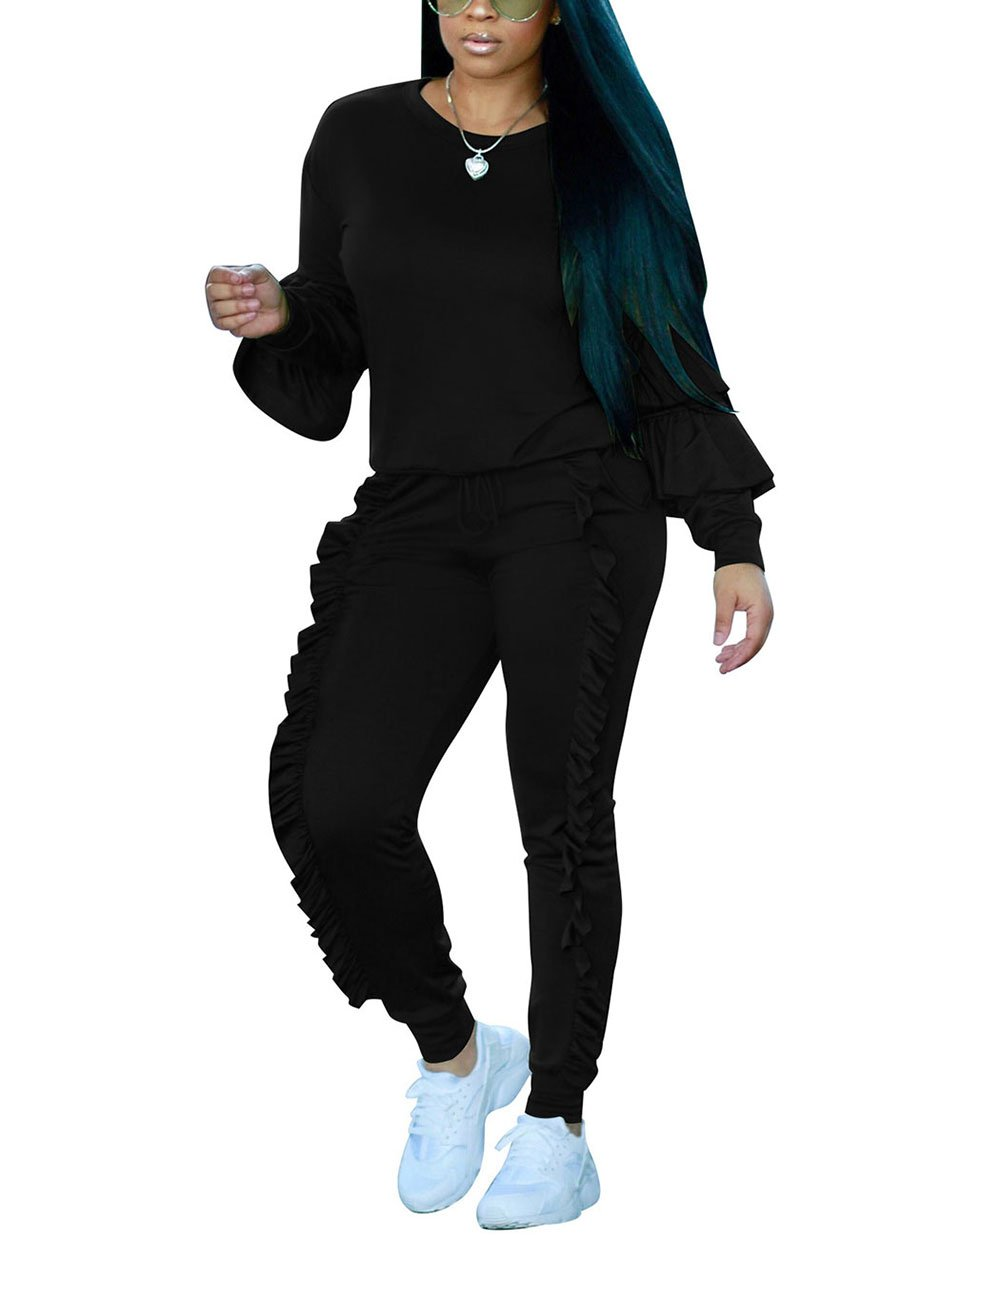 Fashion Two Piece Outfit Ruffle Suit Sweatsuit Tracksuit for Young Women,Black,X-Large/US14-16